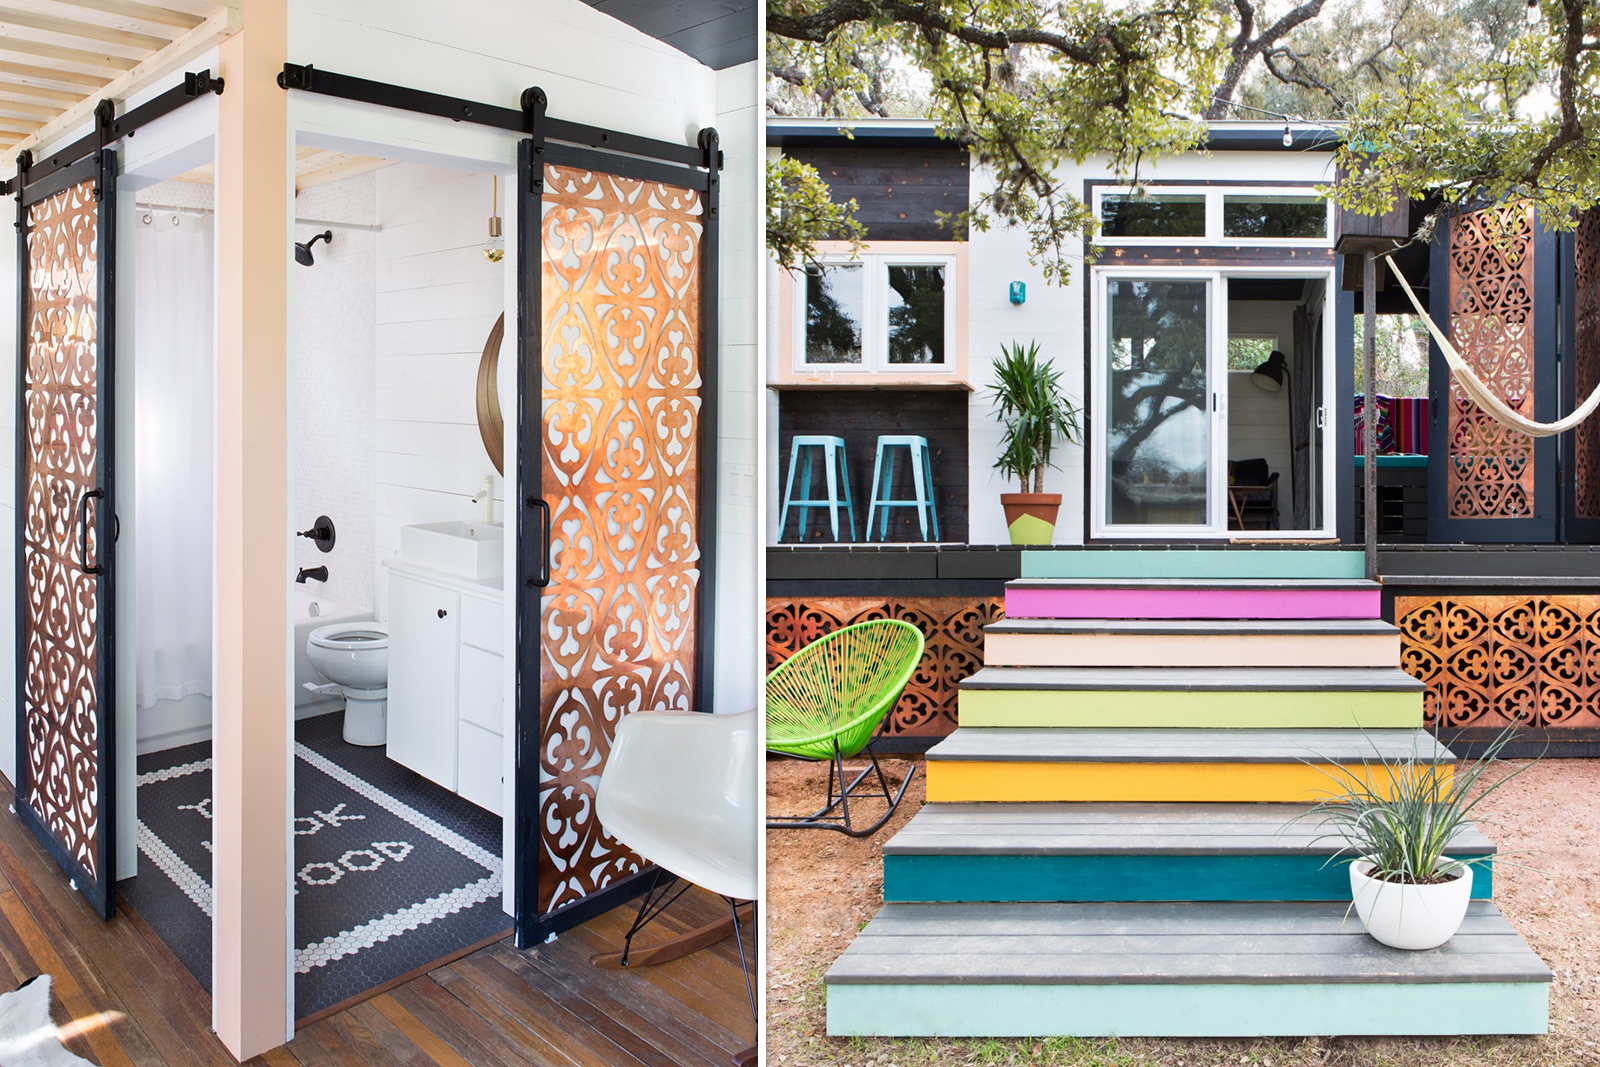 """Parasoleil partnered with Kim Lewis to provide panels for her """"Mid-Century Marfa"""" Tiny Home, designed for FYI's """"Tiny Homes Nation"""". Parasoleil copper panels were used in this 380 square-foot home to screen in the porch, the bathroom, and as part of the front door."""